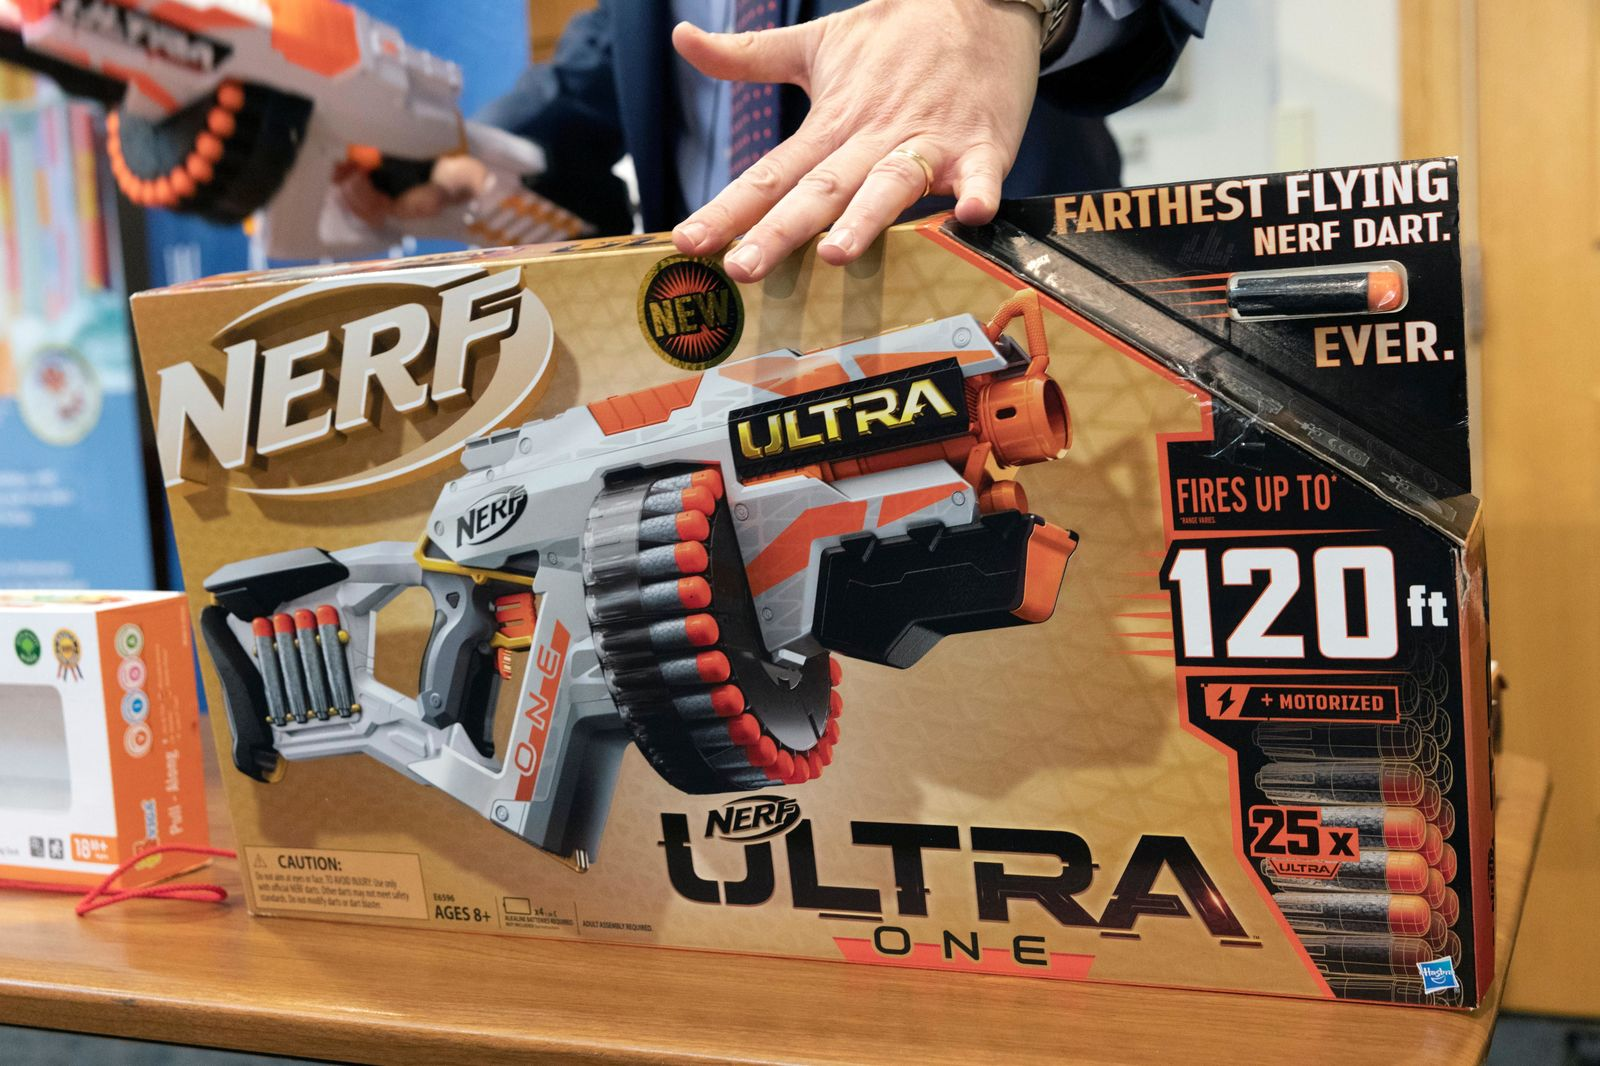 James Swartz, director of World Against Toys Causing Harm, talks about the dangers of the Nerf Ultra One, during a news conference in Boston, Tuesday, Nov. 19, 2019. The organization says the Nerf Ultra One gun, which is billed as firing soft darts up to 120 feet, shoots the projectiles with enough force to potentially cause eye injuries. (AP Photo/Michael Dwyer)